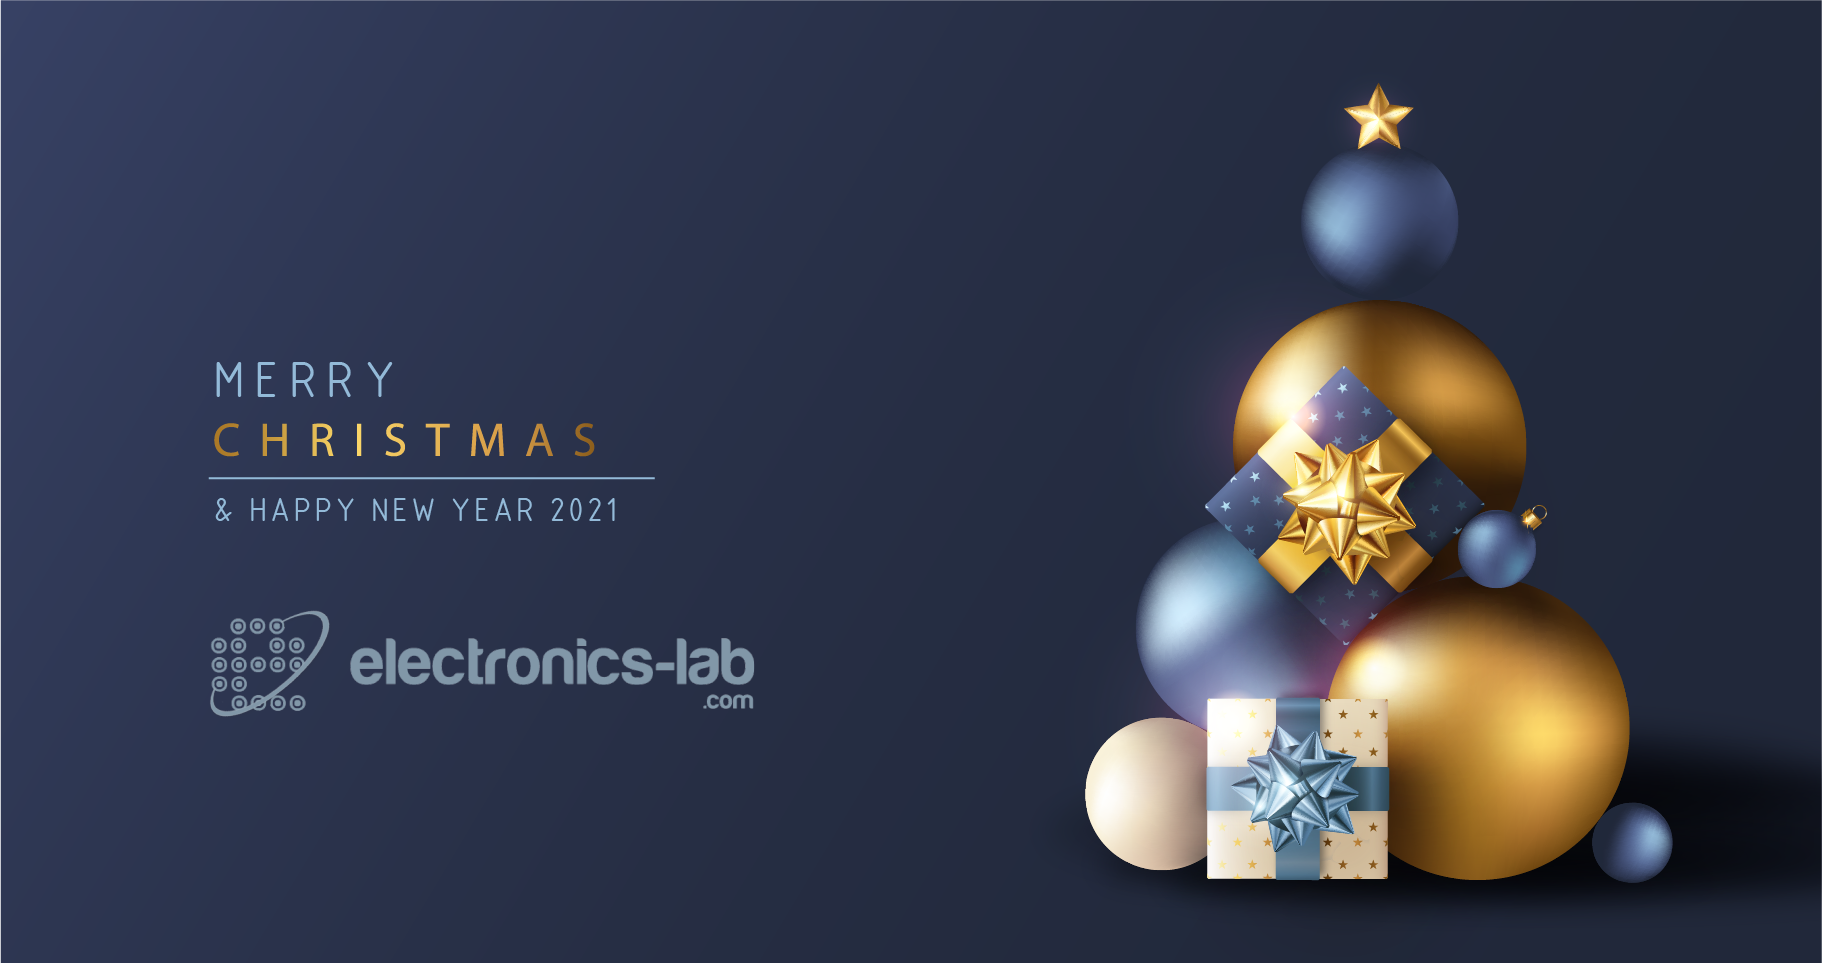 Merry Christmas from Electronics-lab.com